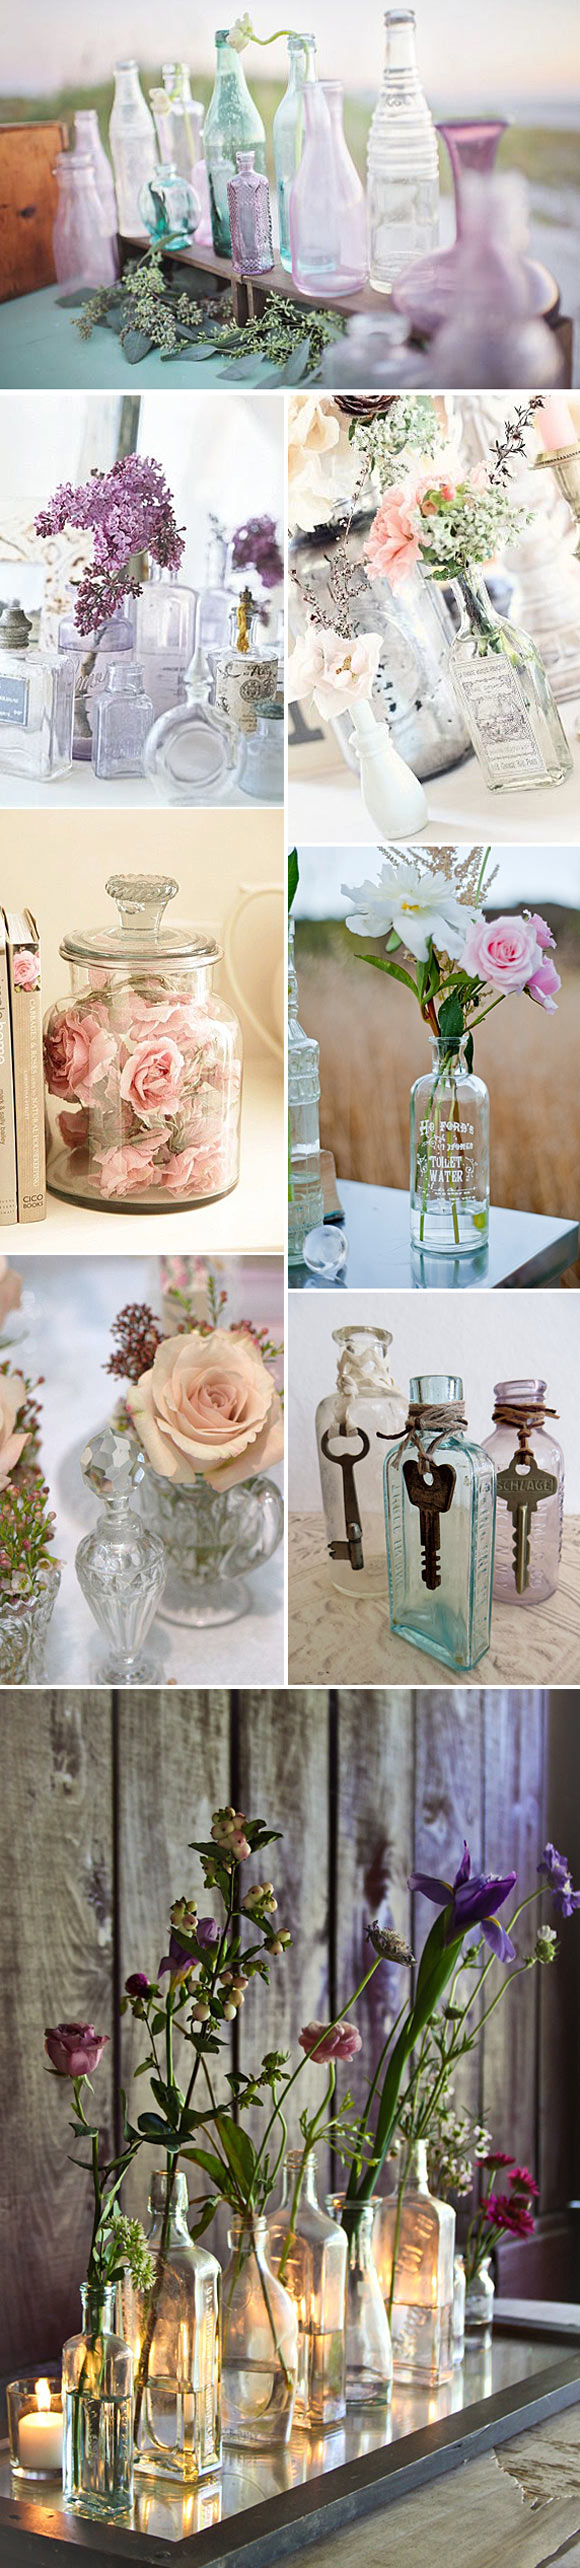 Ideas para decorar con botellas de cristal estilo vintage